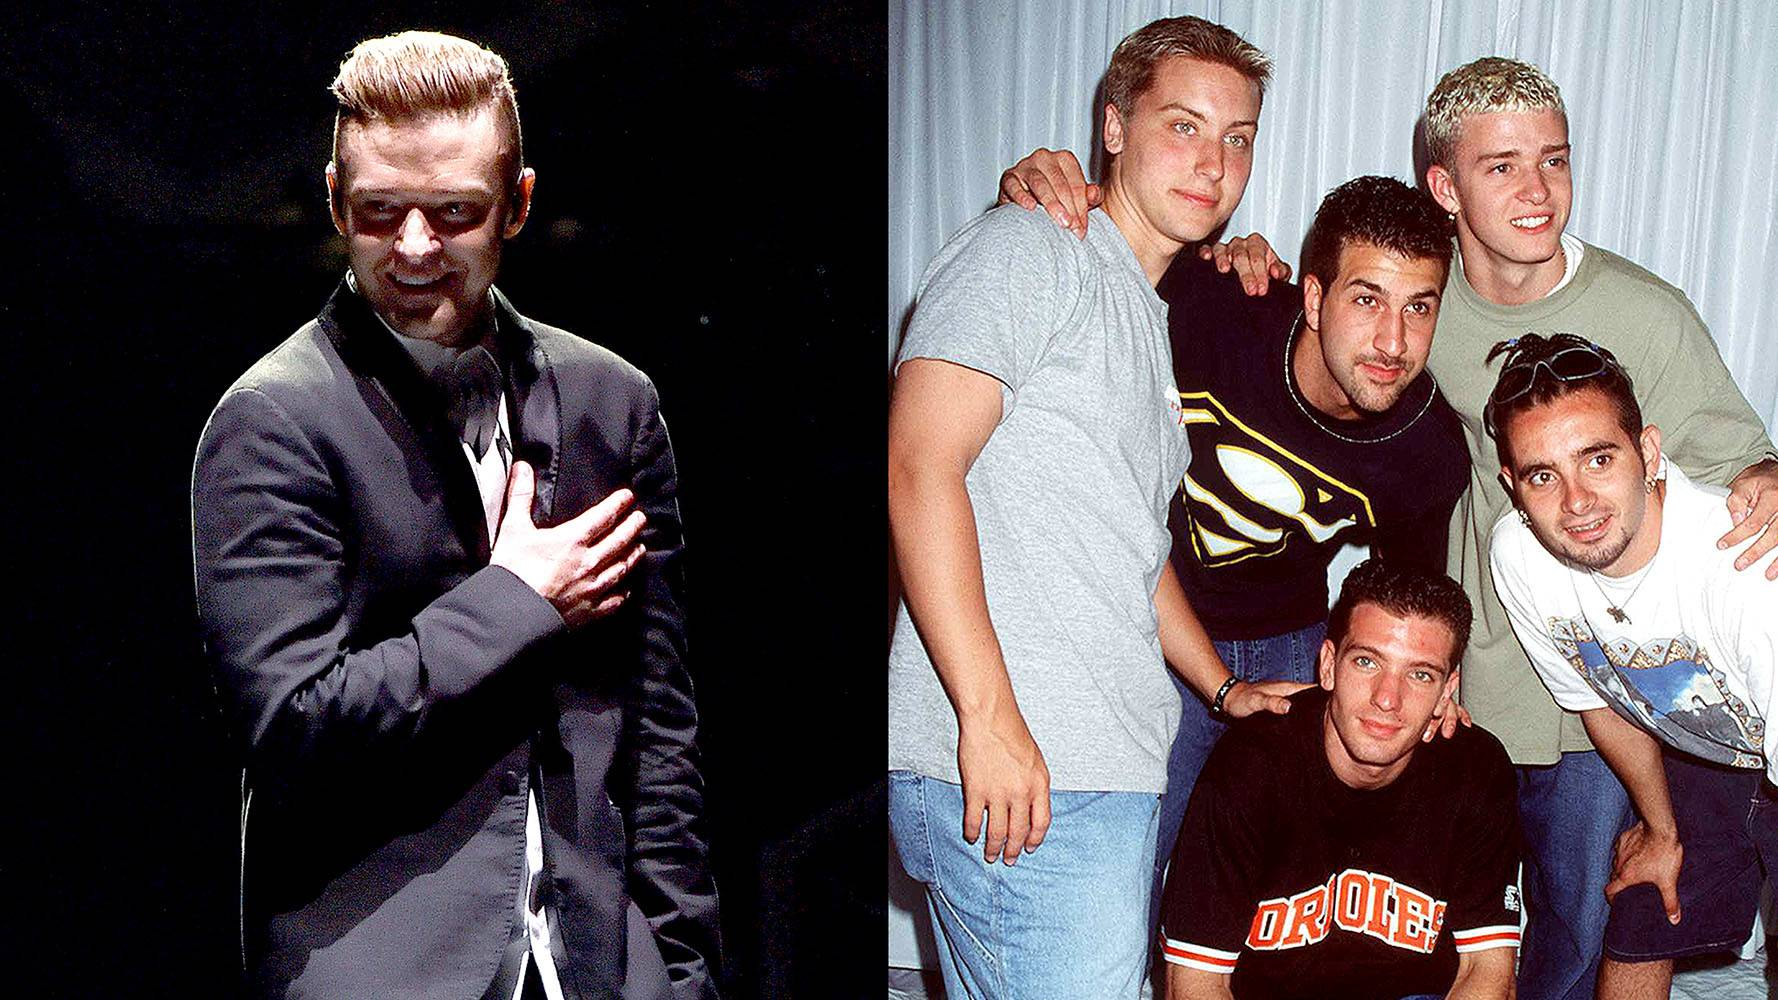 Justin Timberlake | N'Sync  - Let's be absolutely real, when you saw this list, the first person you thought of was JT! So it's no surprise that the pop group N'Sync and Justin Timberlake made this list. They set off the '90s airwaves for so long, it's sad to think they're not still together. (Photos from Left: Kevin Winter/Getty Images for JT, Brenda Chase/Getty Images)